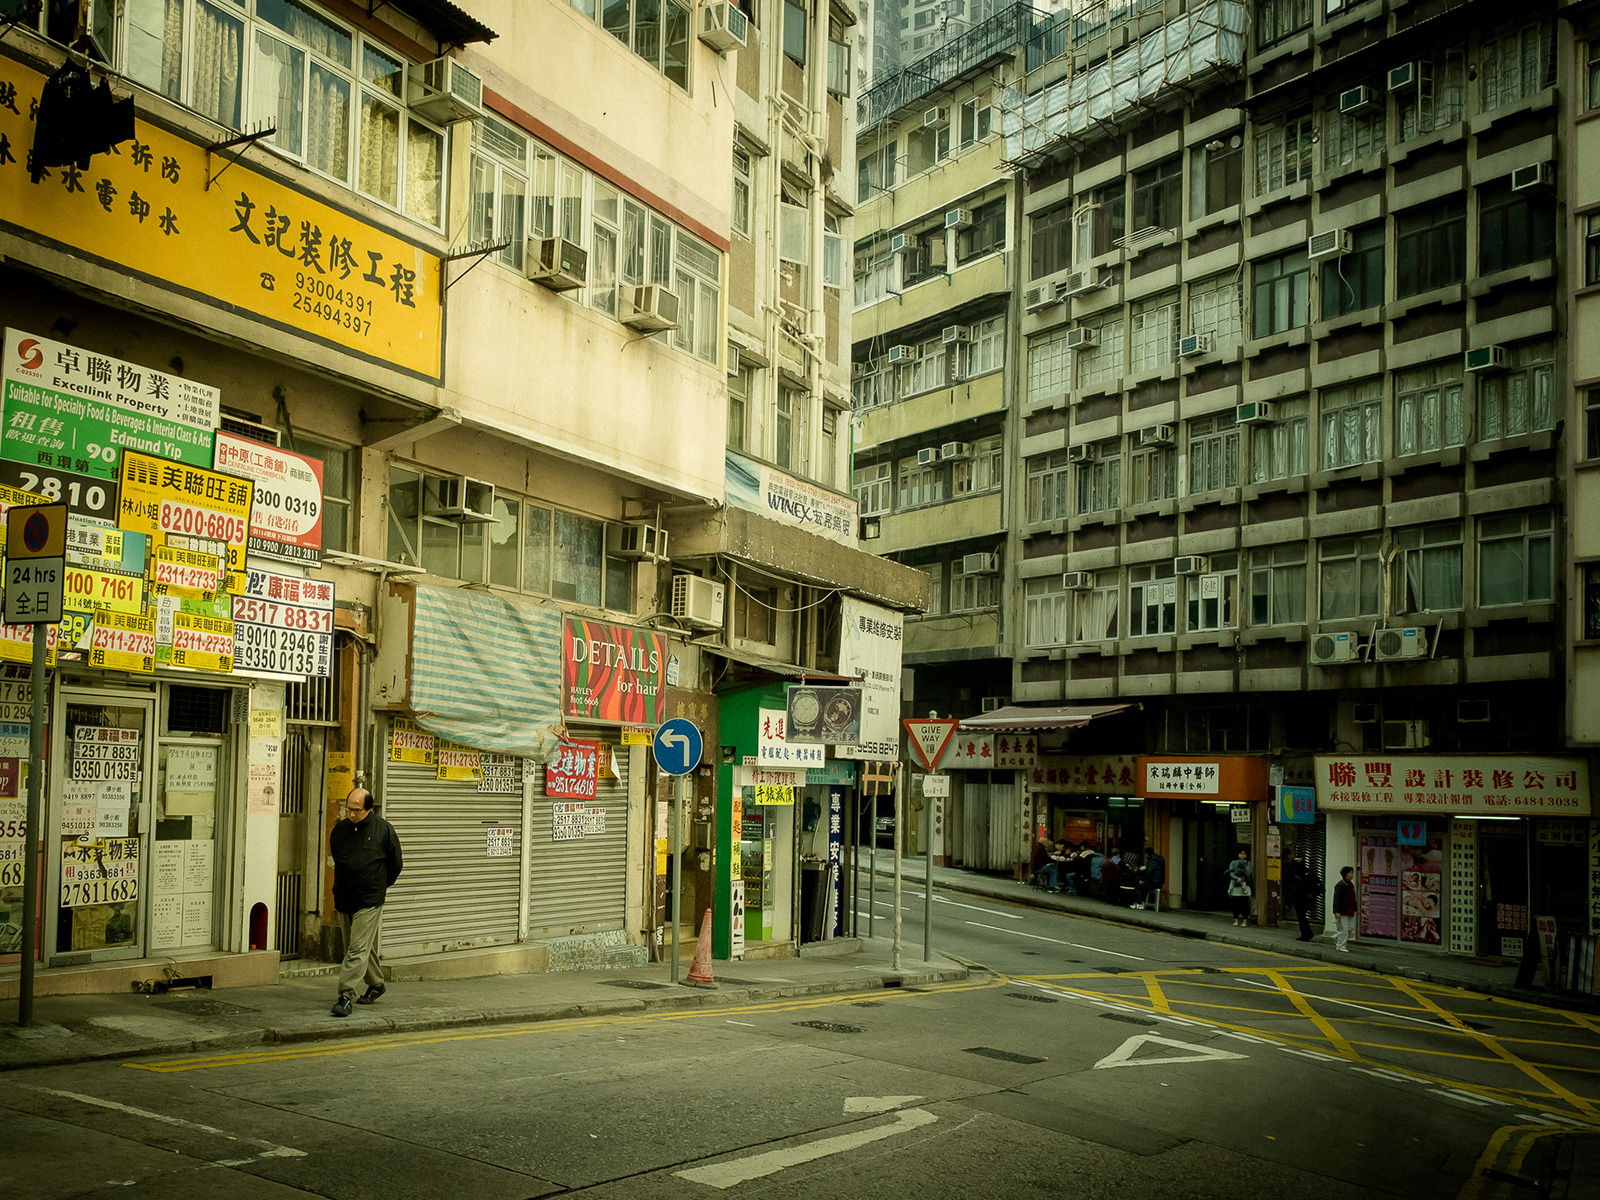 Street scene in Sai Ying Pun (Photo: Os Ishmael/Flickr)